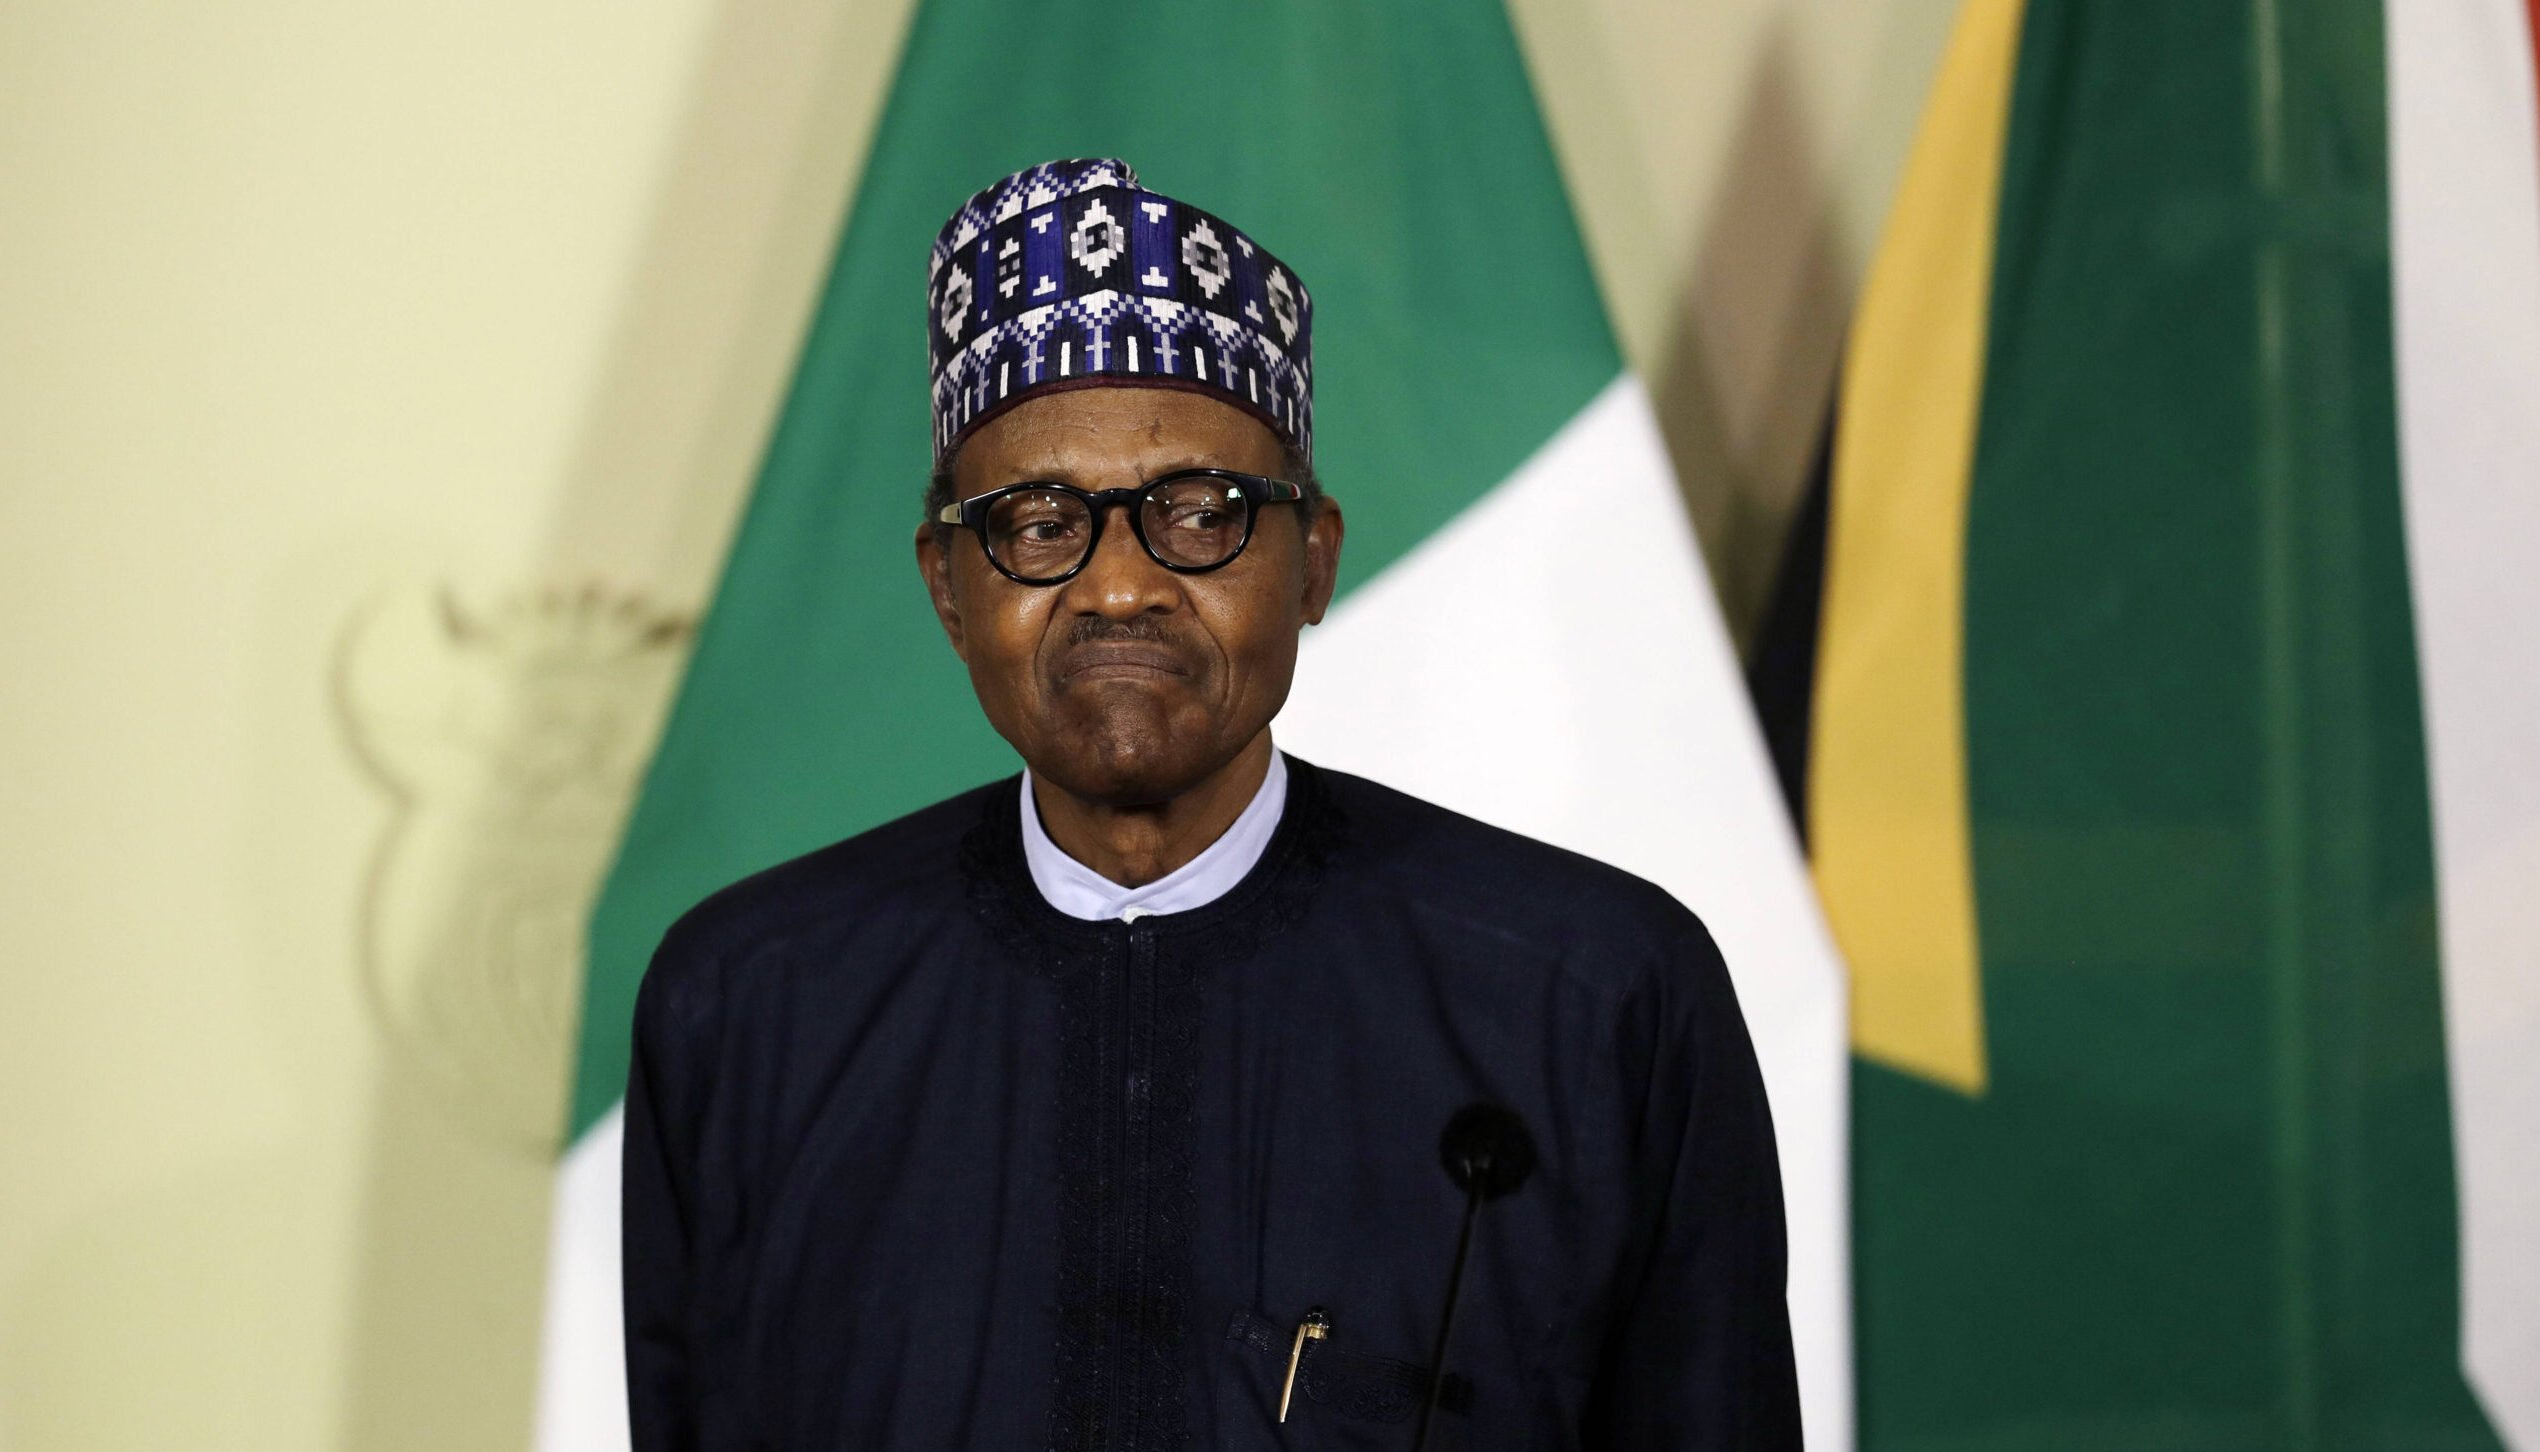 Nigeria: Stop shooting yourself in the foot! - The Africa Report